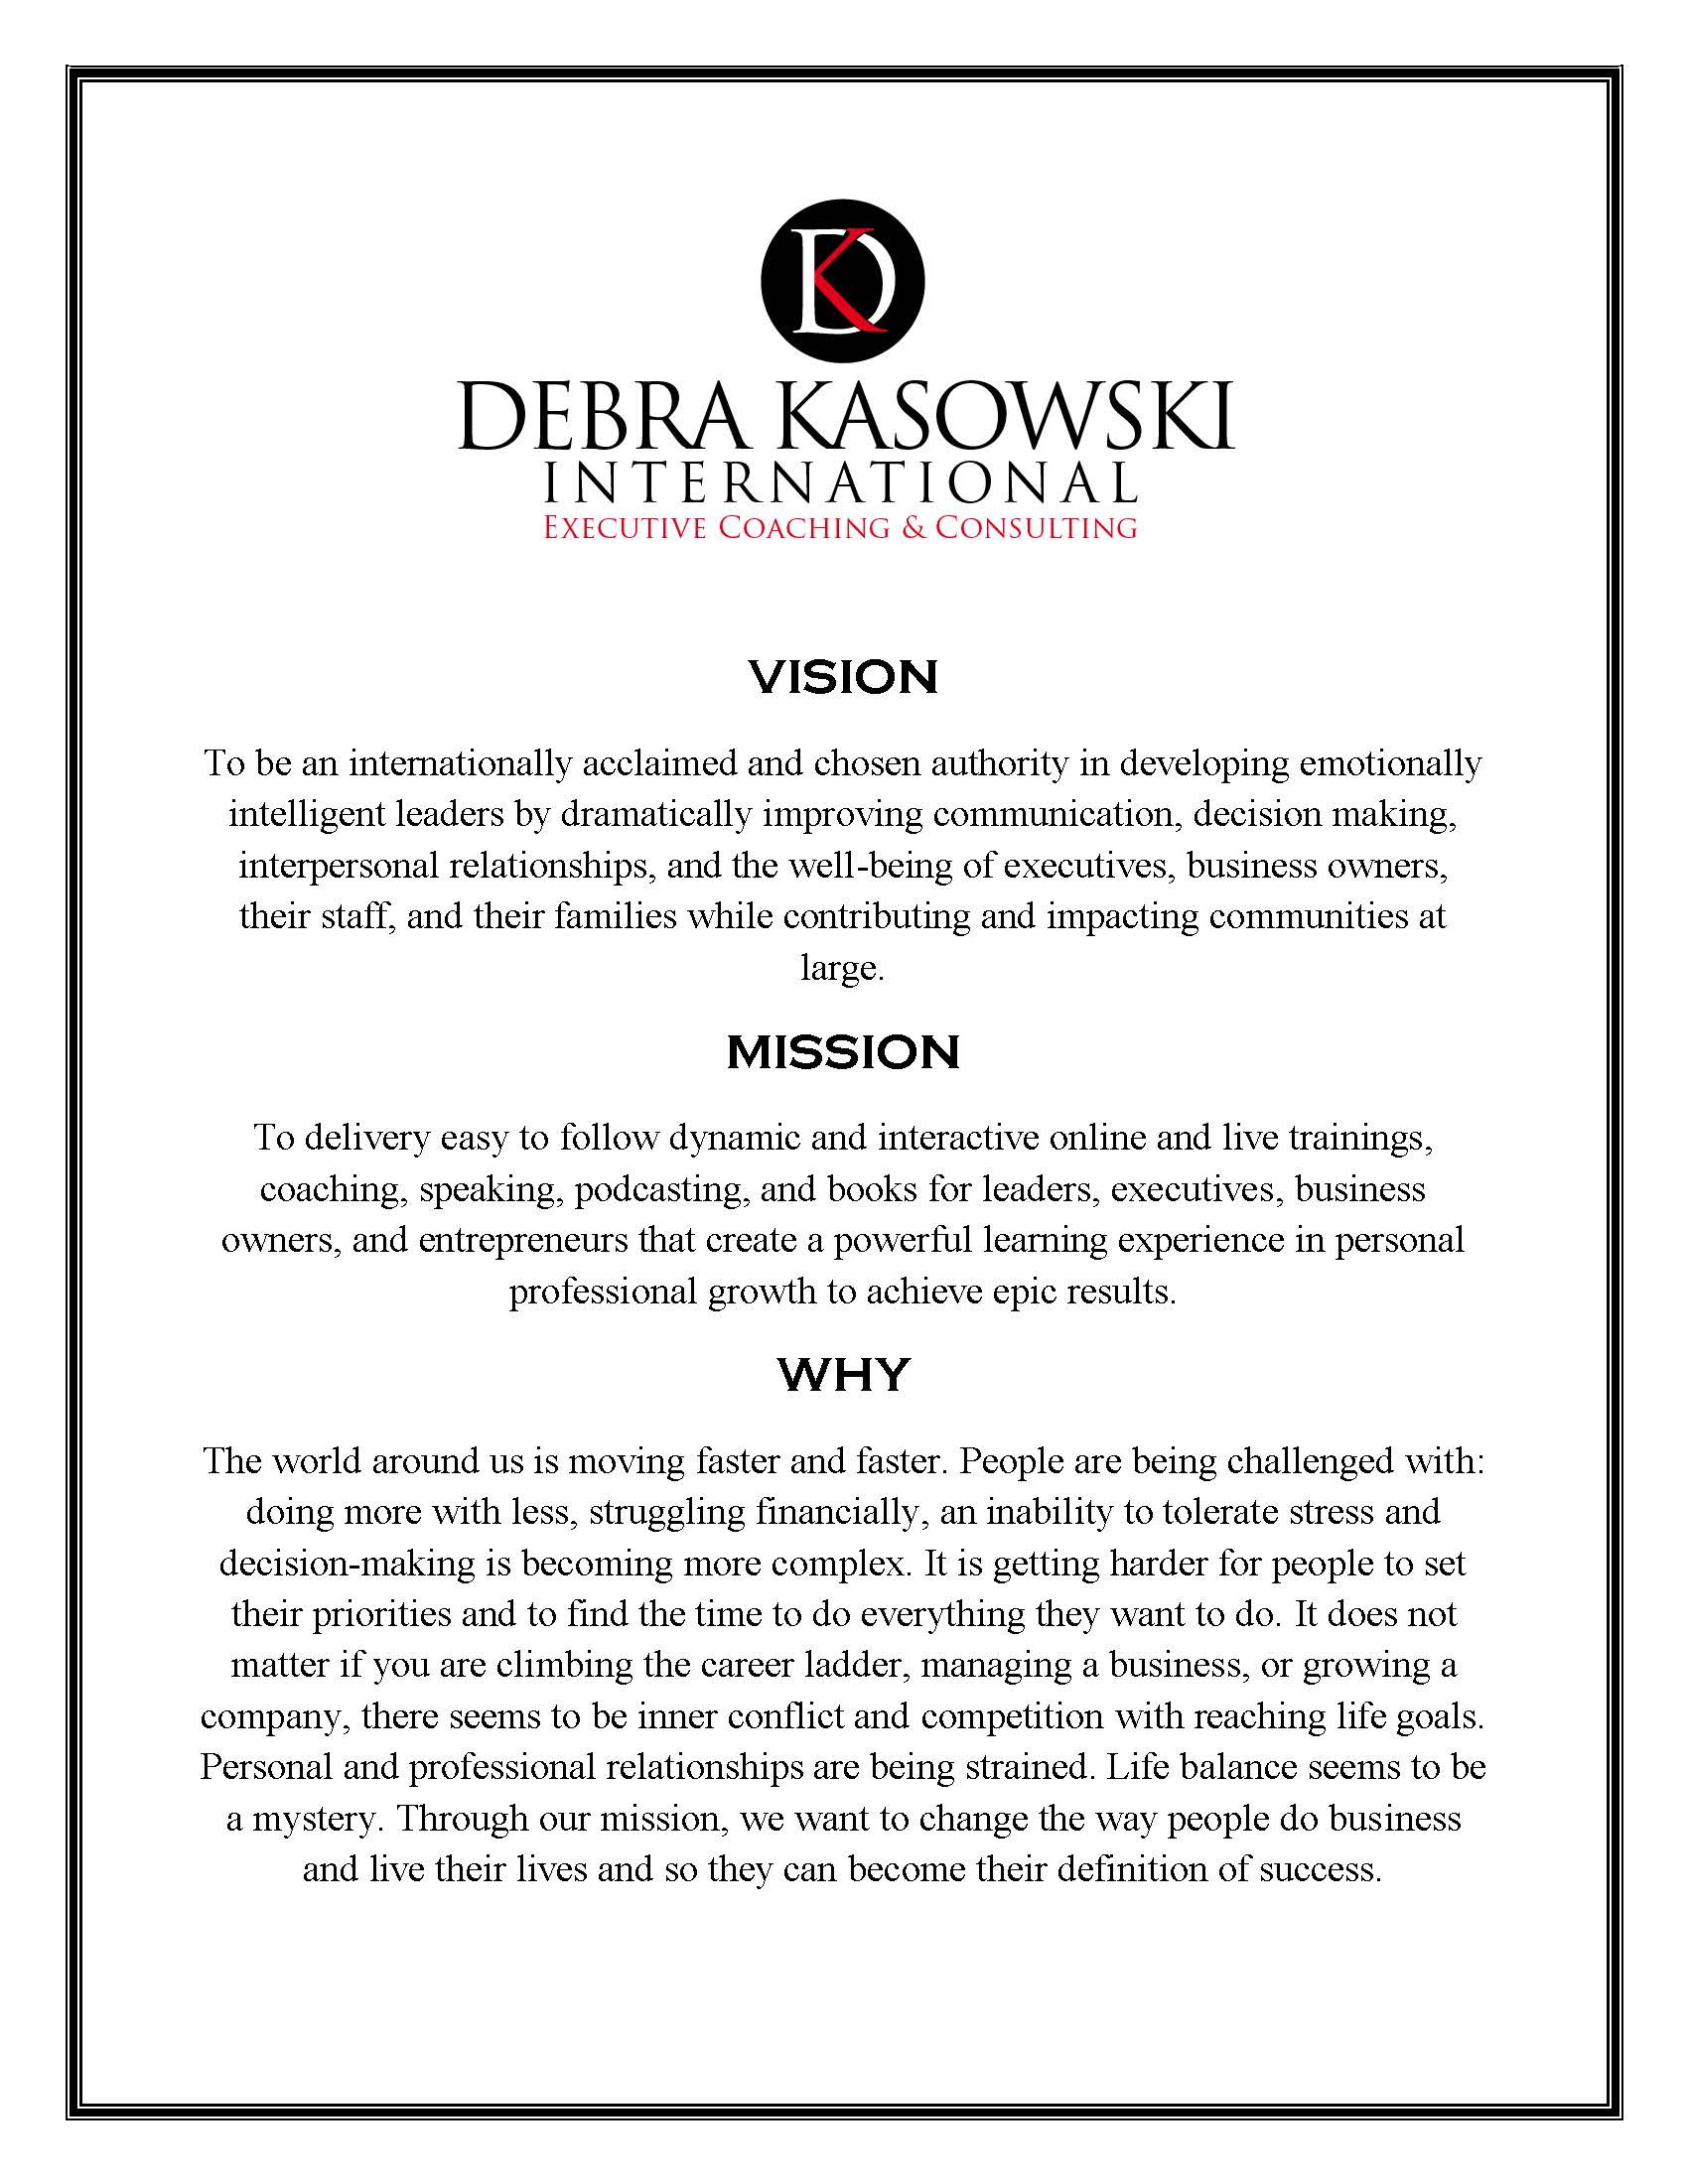 DKI VisionMissionWhyCoreValues_Page_1